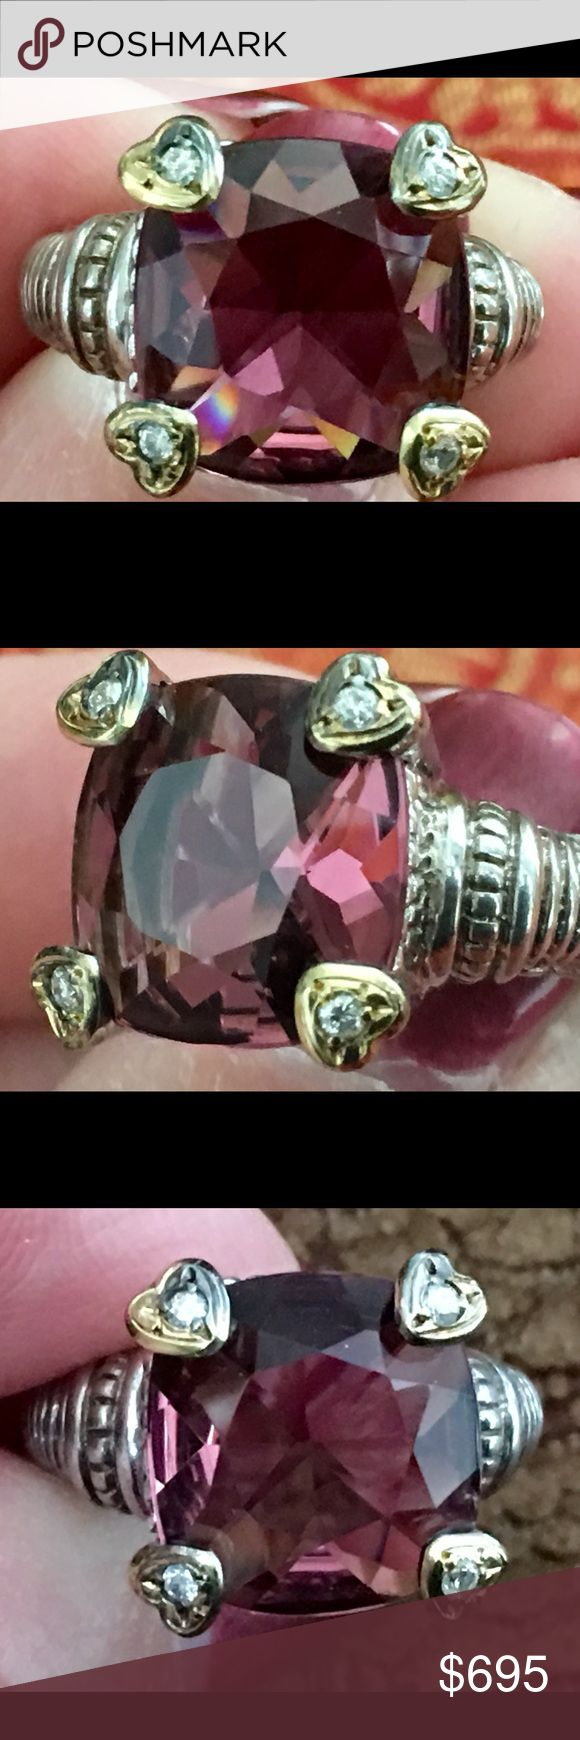 Judith Ripka 925 and 18K Amethyst & Diamond Ring This is a genuine Judith Ripka amethyst and diamond 18k gold  and sterling silver ring. This is a beautiful large ring. Size 7 1/2. Worn only a few times! Gorgeous! Price is firm! Judith Ripka Jewelry Rings